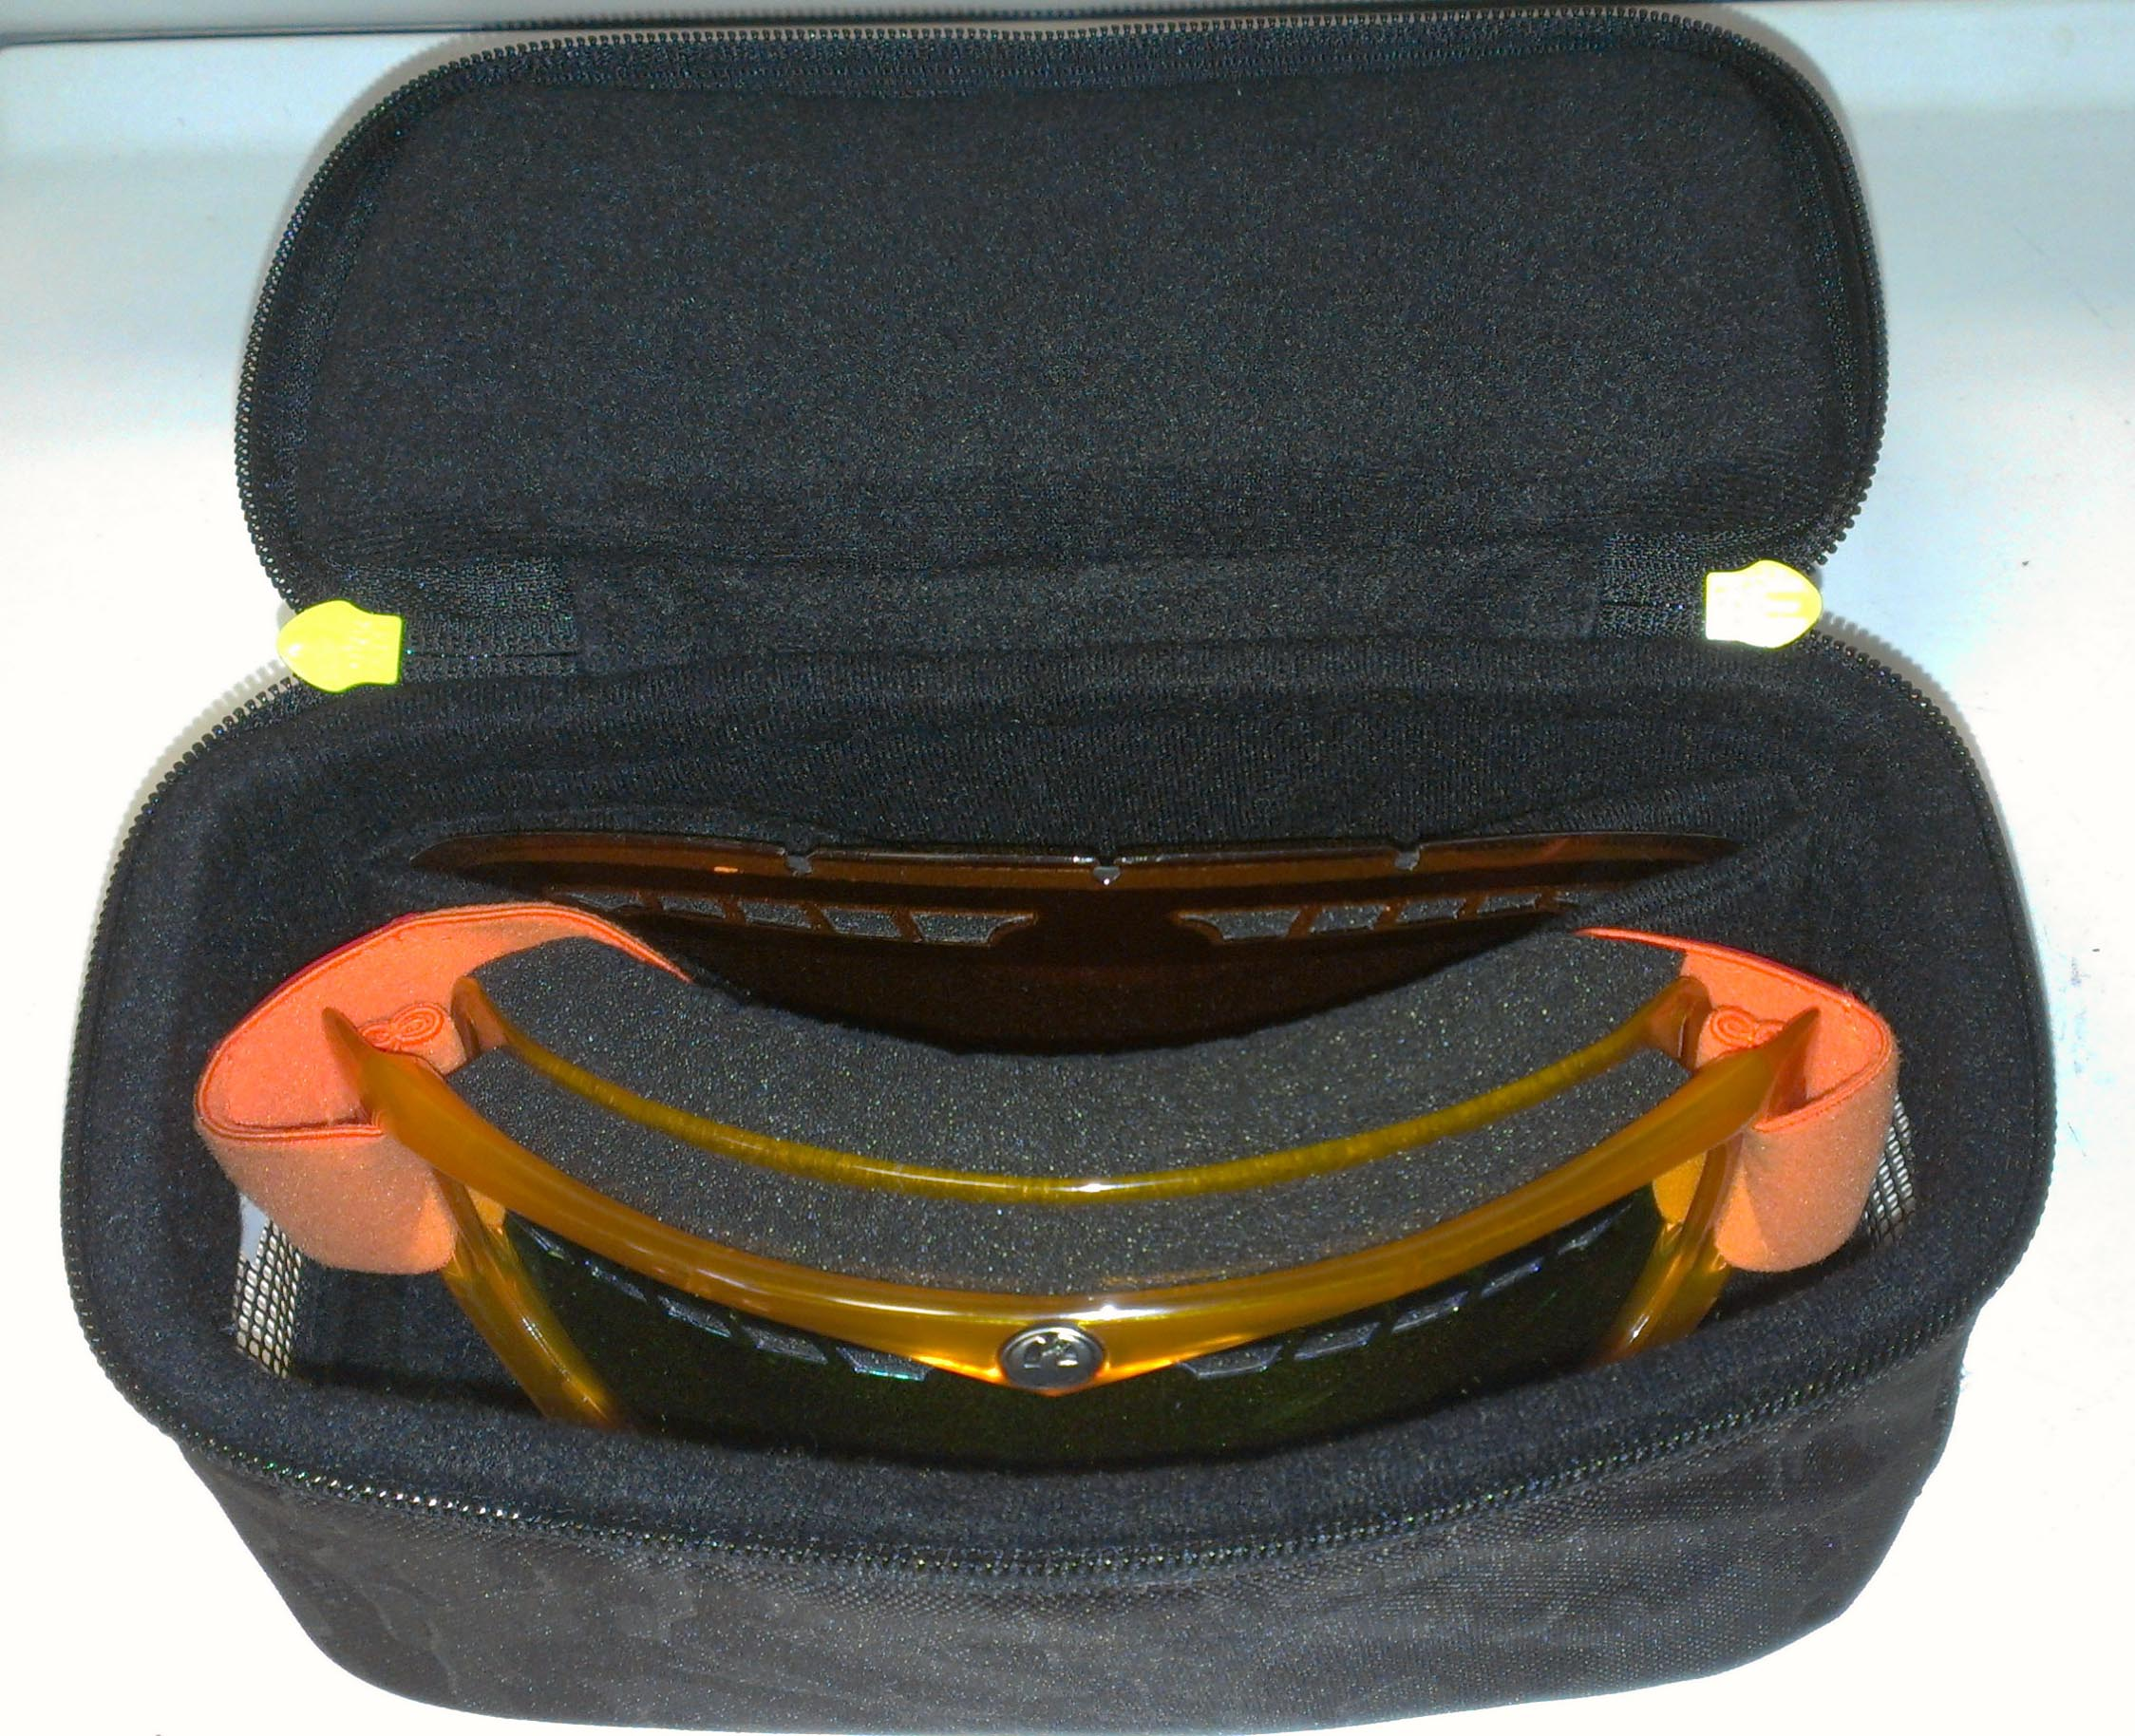 Article 1 - Pic 4 - Progression - Type of Goggles to Wear - Pic of DaKine Goggles Case Open - DF